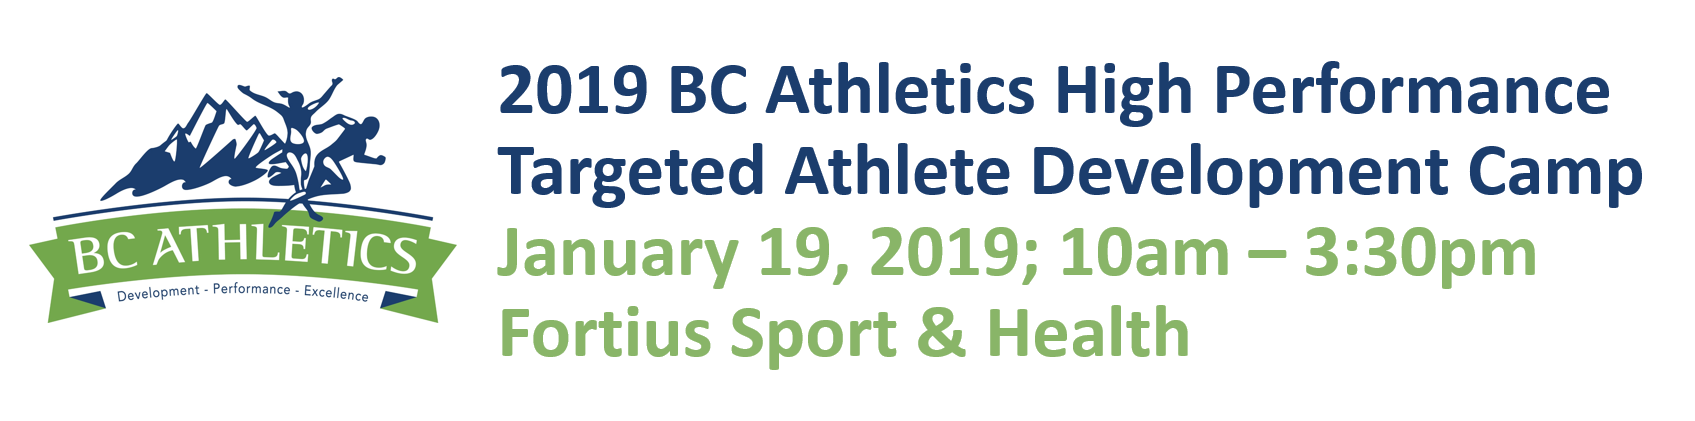 2019 BC Athletics High Performance Targeted Athlete Development Camp